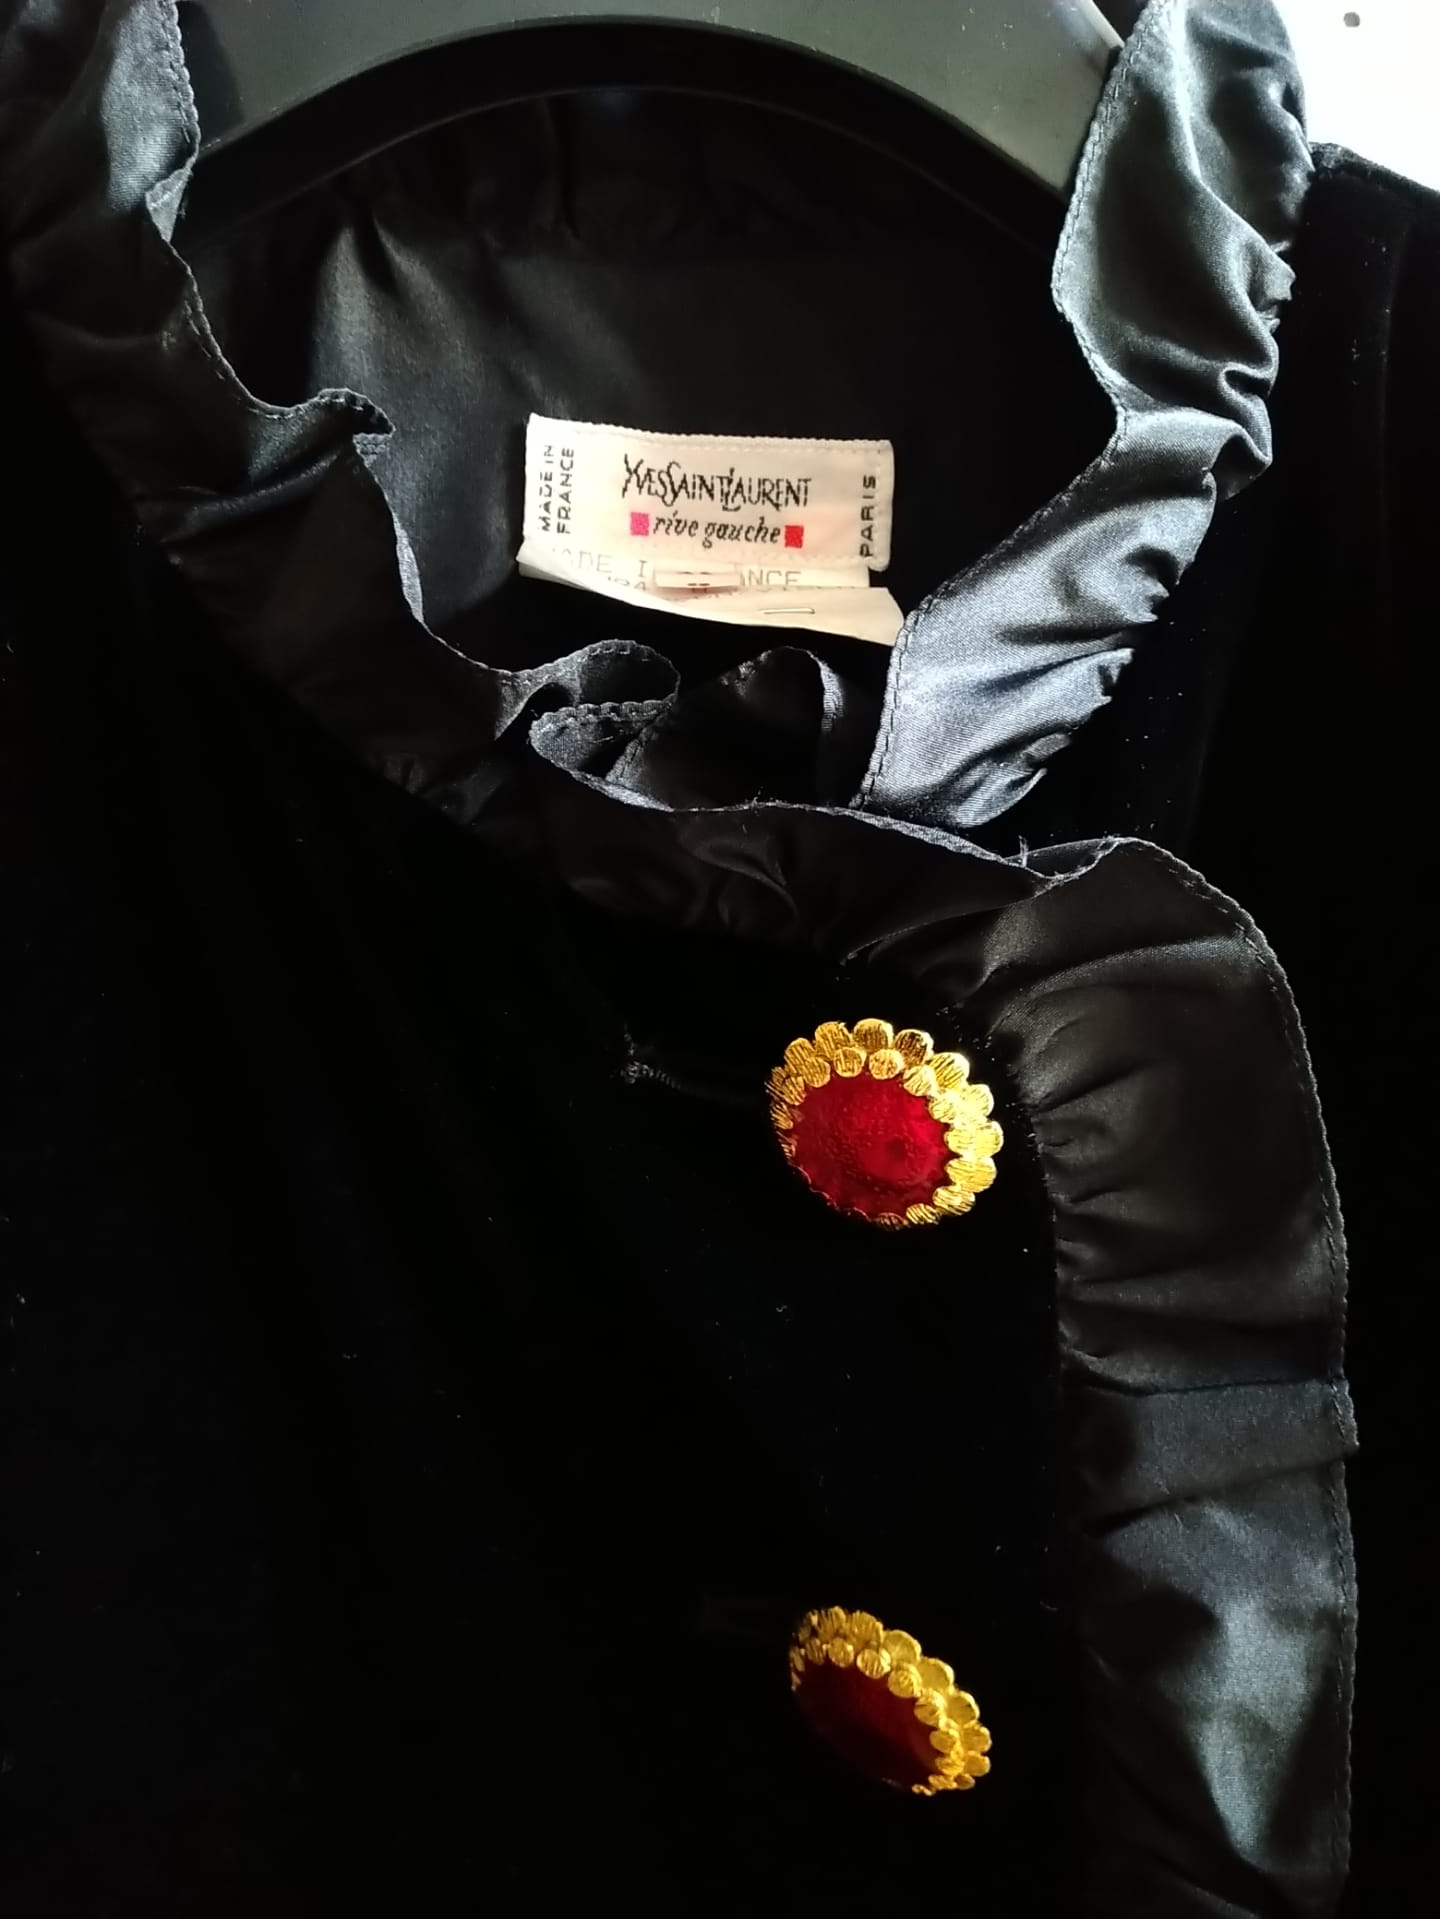 Yves Saint Laurent velvet jacket with red jewelry buttons